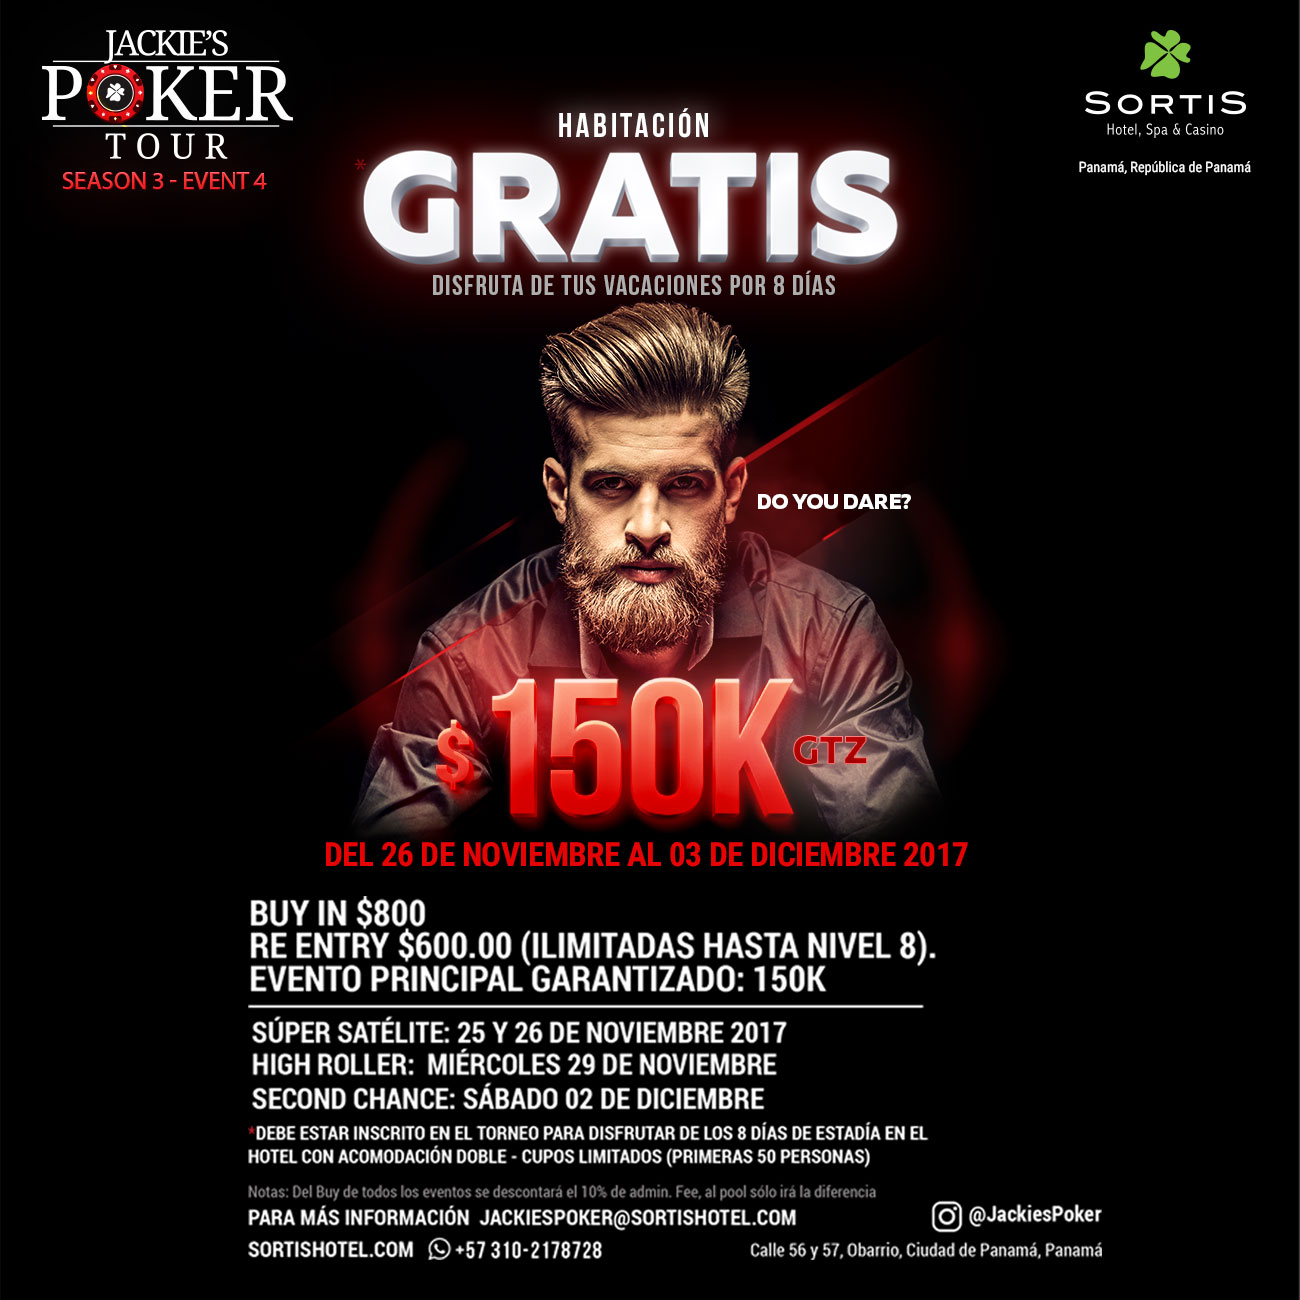 Jackies Poker Tour Season 3 - Event 4